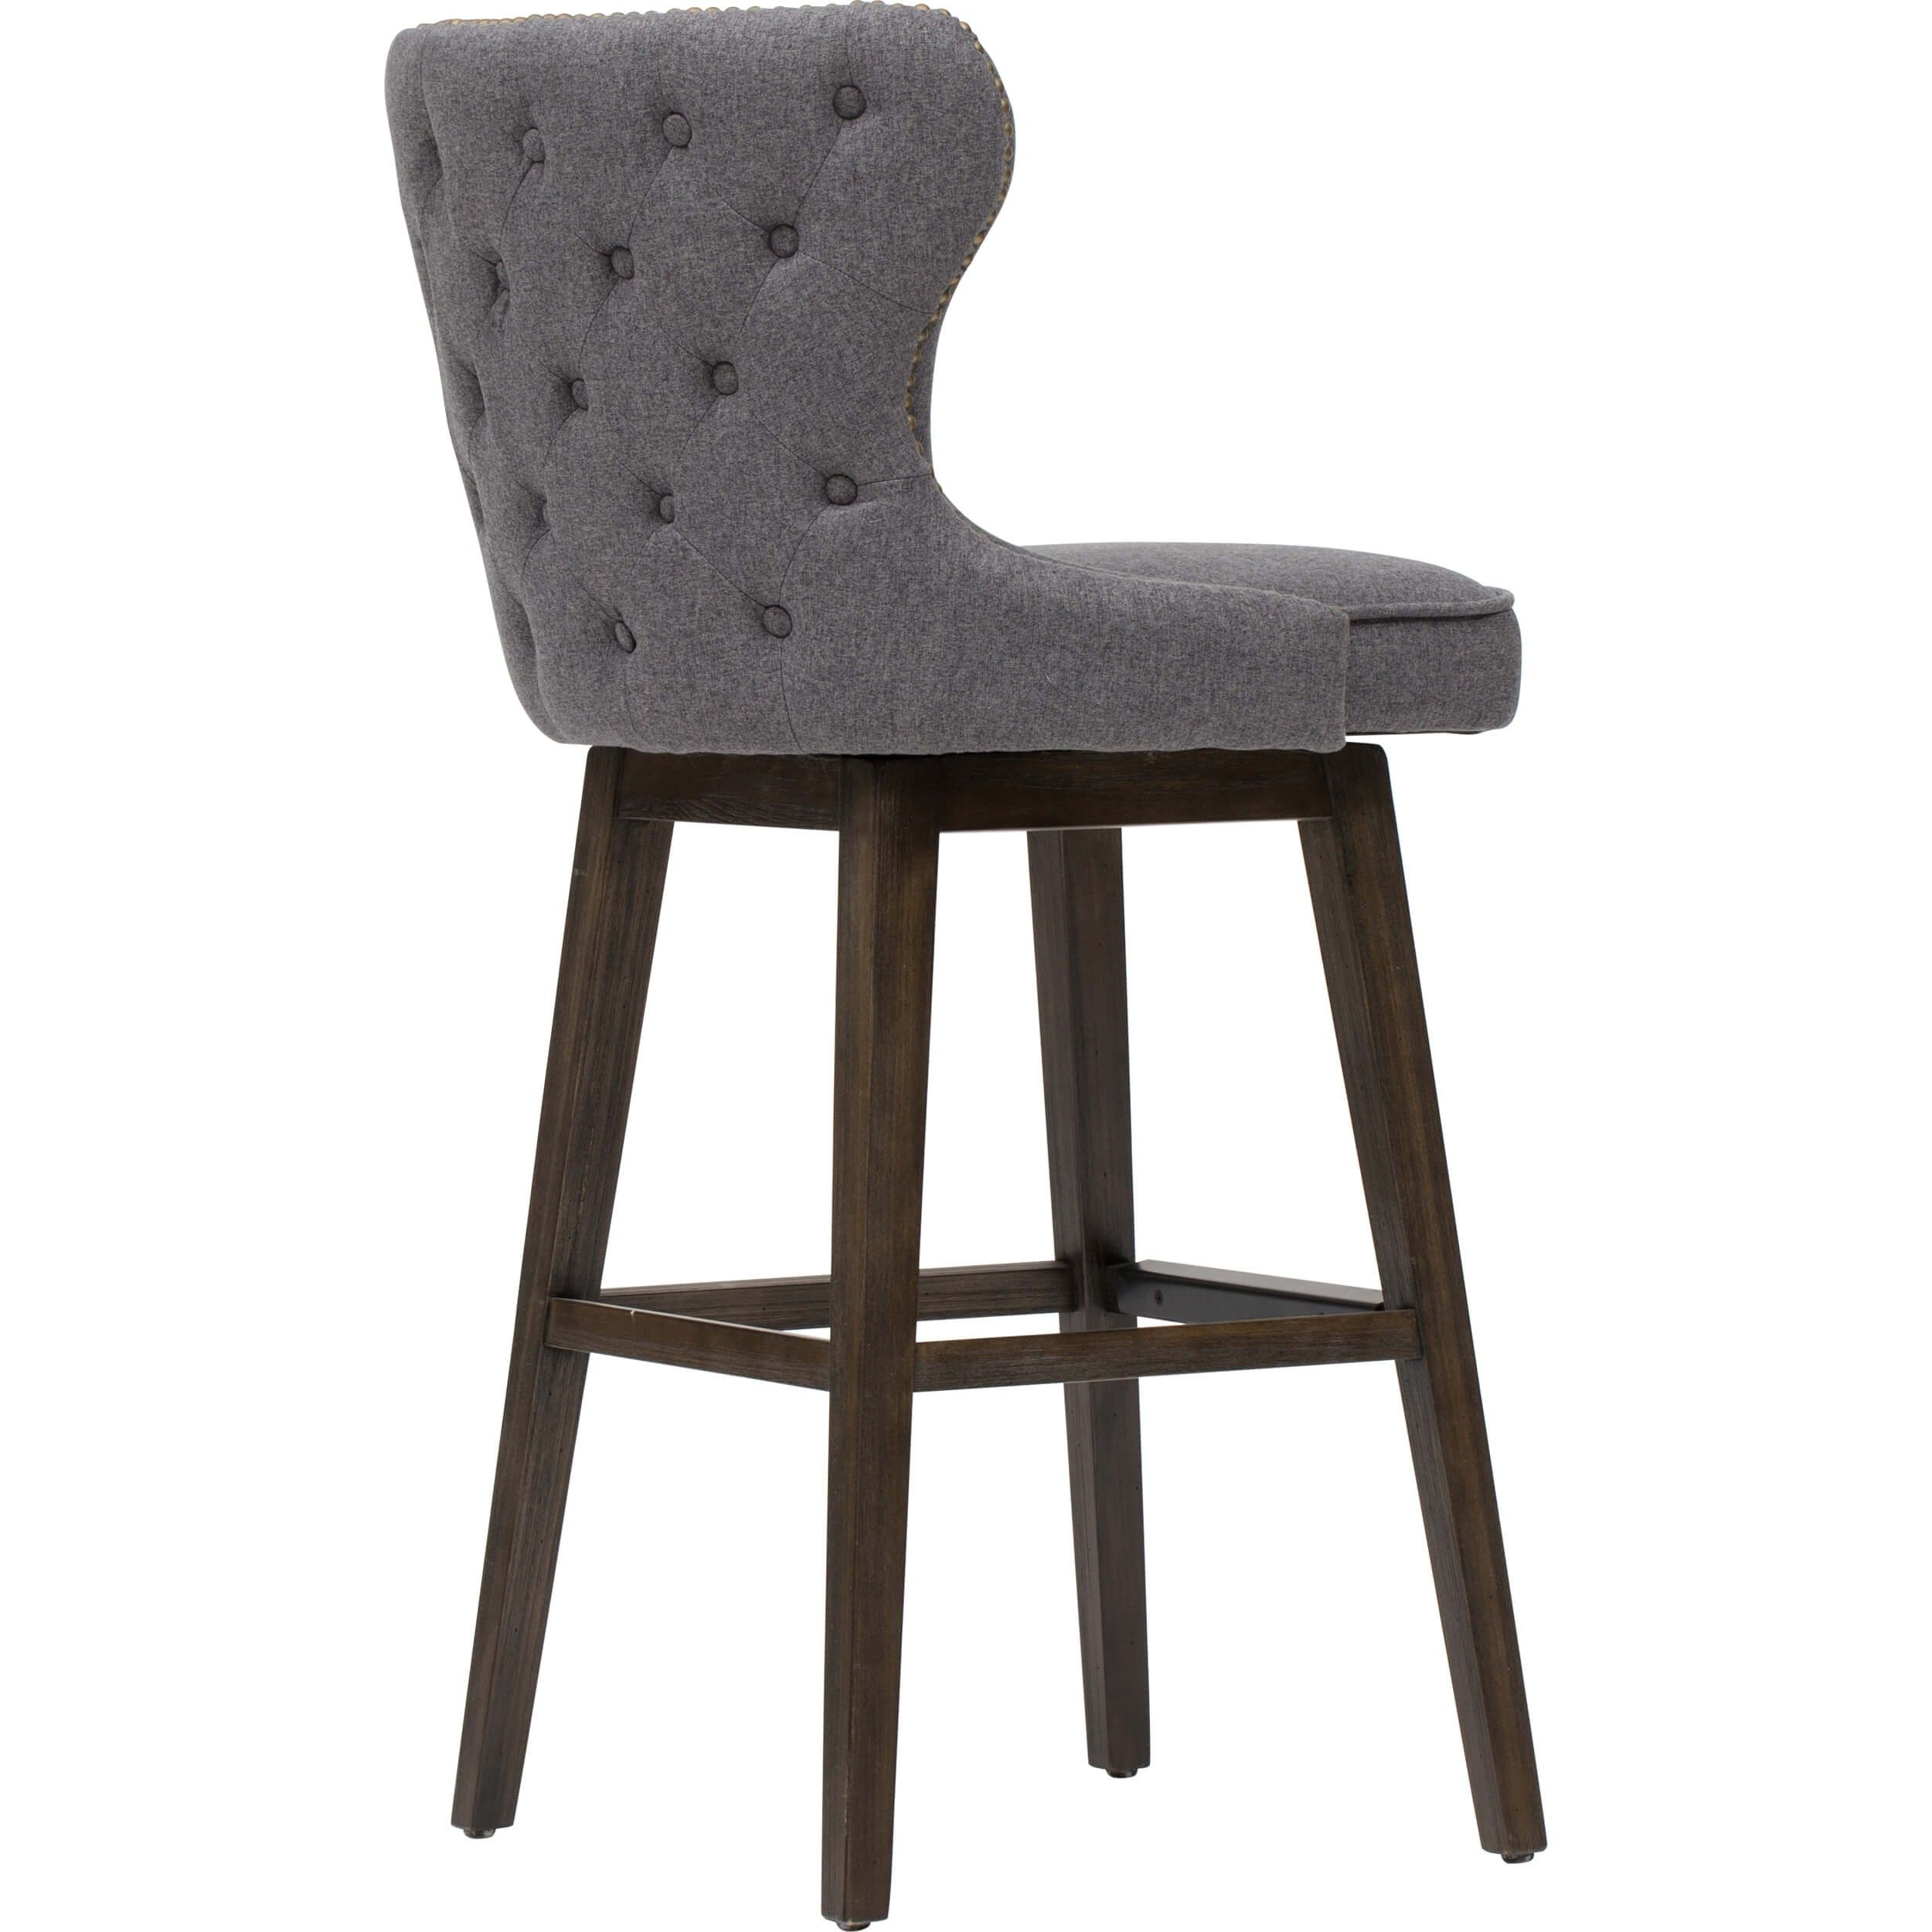 Ariana Swivel Bar Stool Dark Grey Swivel Bar Stools Swivel